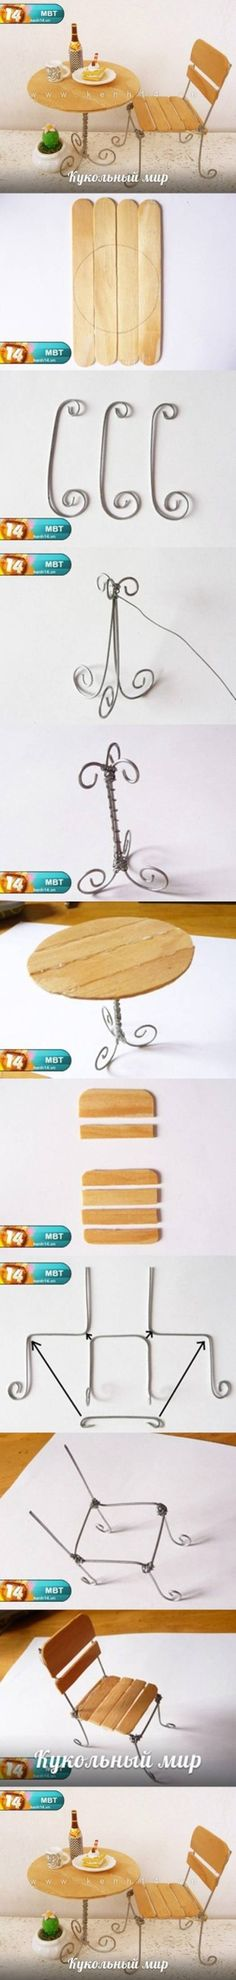 diy, tutorial by diyforever